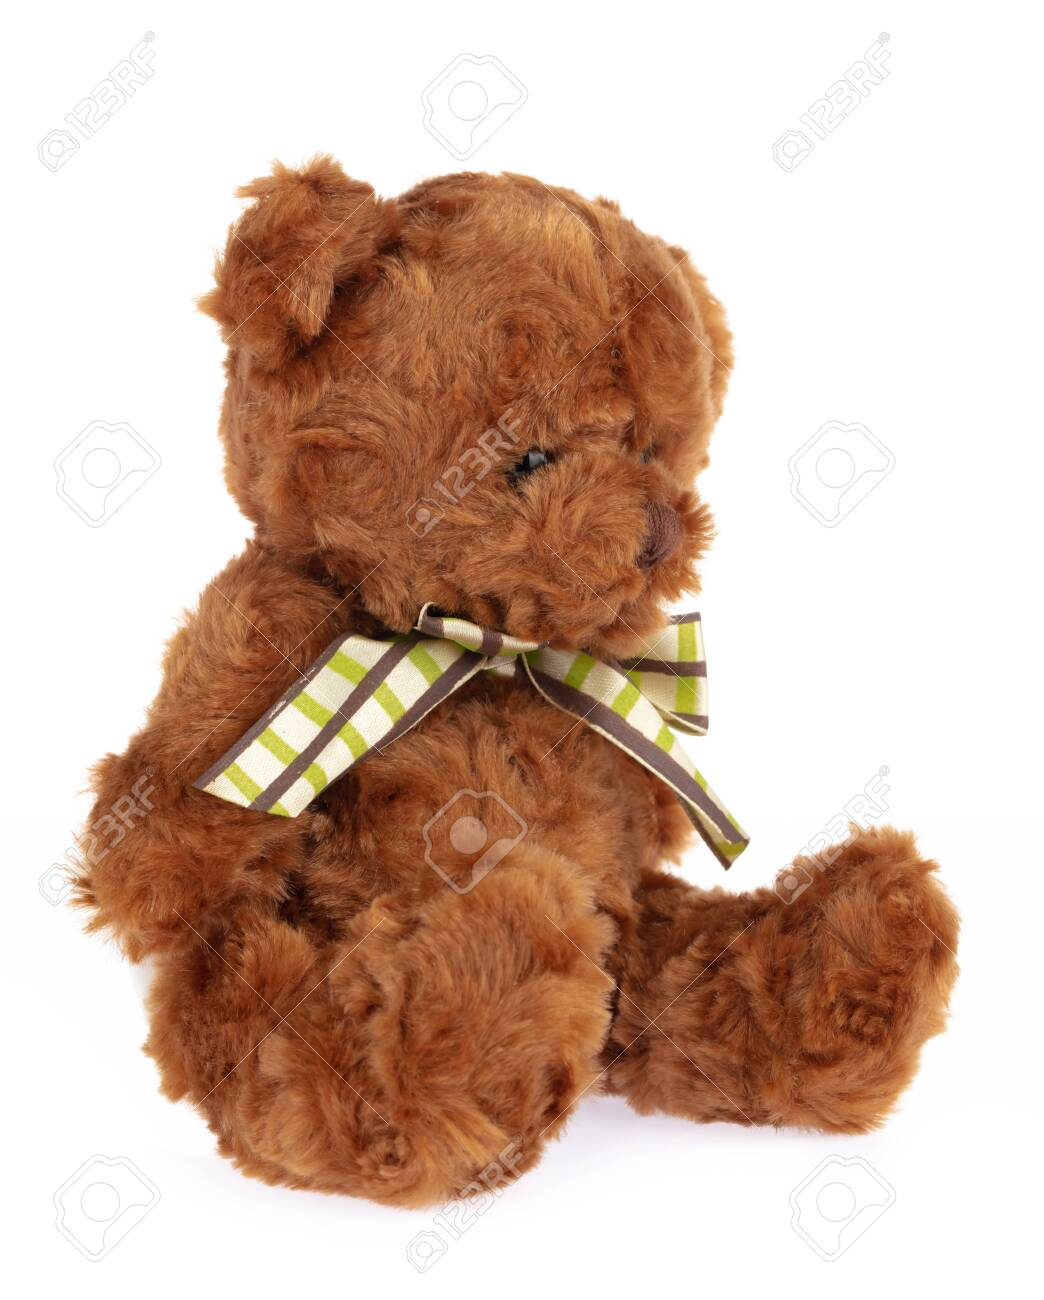 teddy bear doll isolated on white background. - 143487010